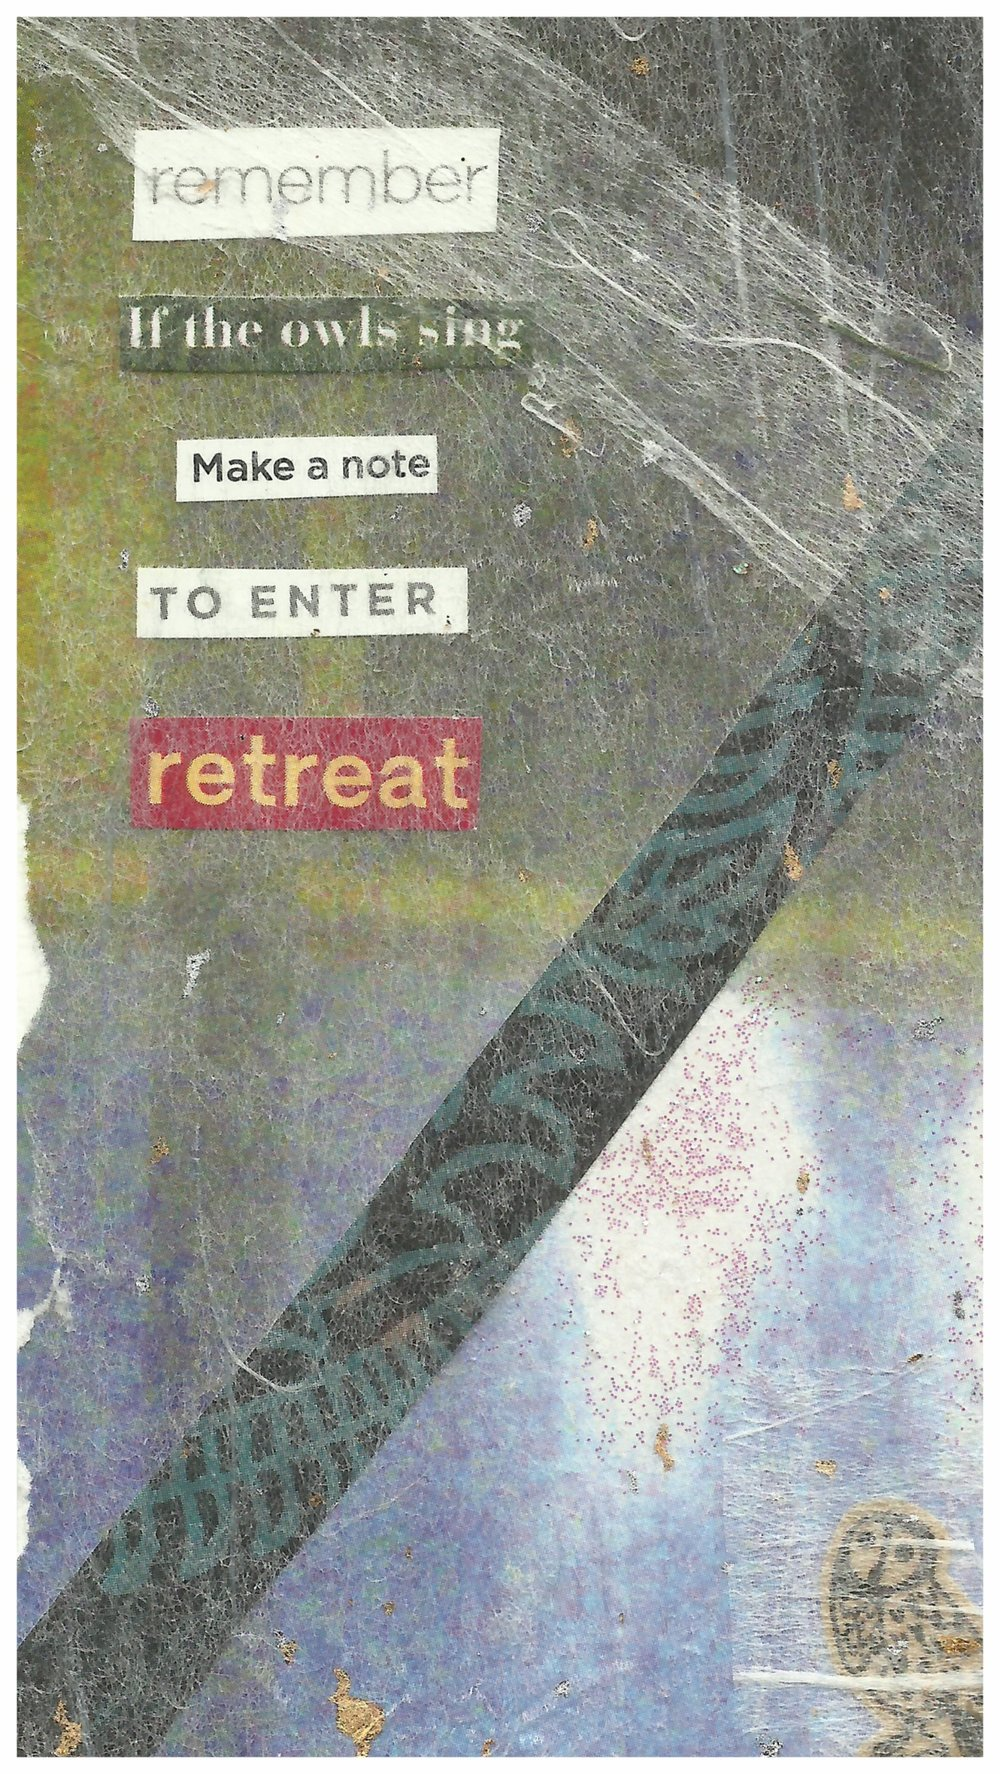 Retreat: if the owls sing.